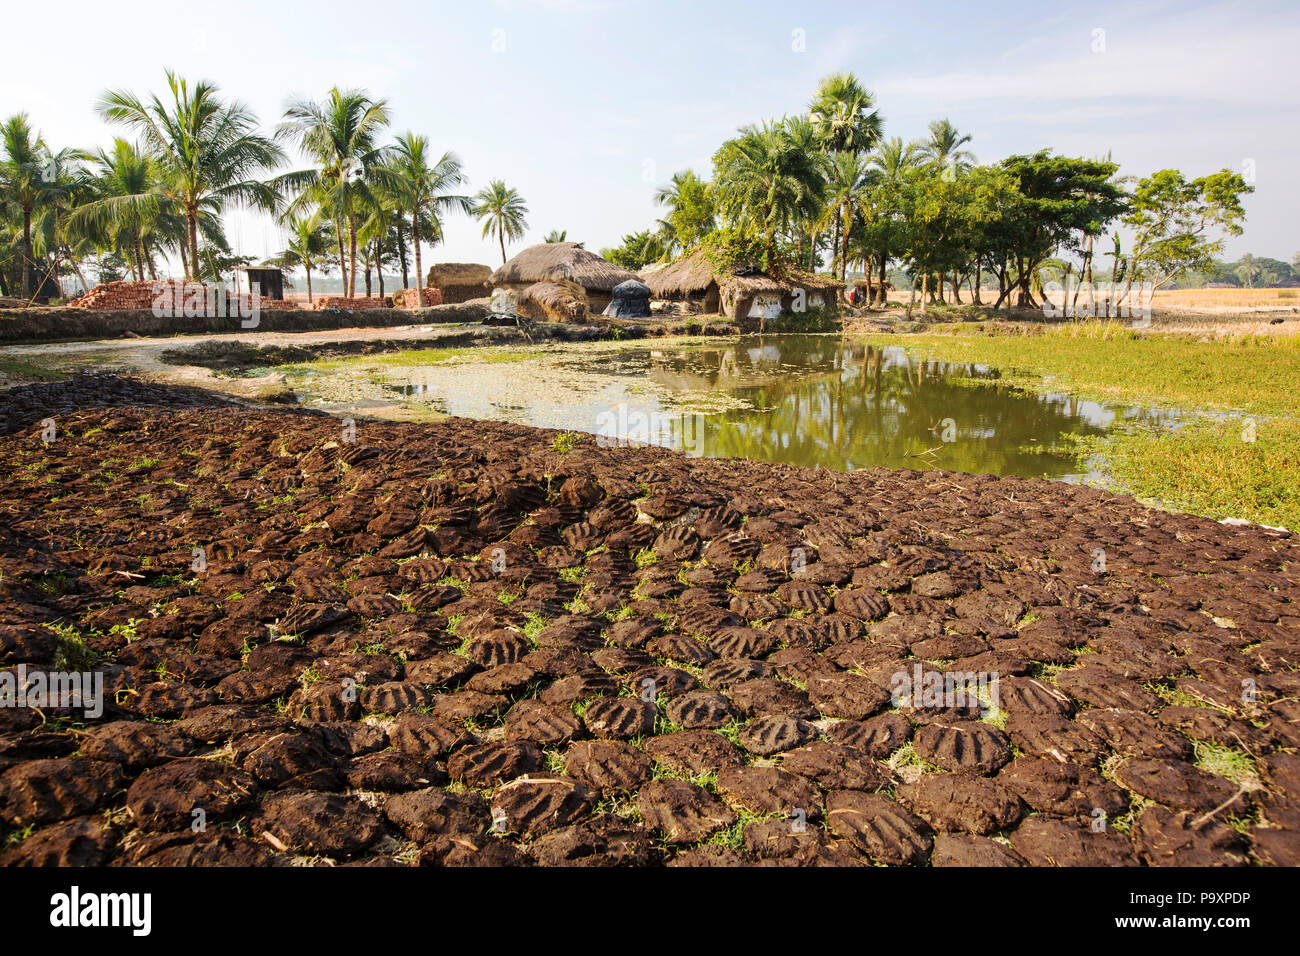 Cow dung belonging to subsistence farmers in the Sundarbans, a low lying area of the Ganges Delta in Eastern India, that is very vulnerable to sea level rise. The cow dung is used as biofuel in traditional clay ovens - Stock Image